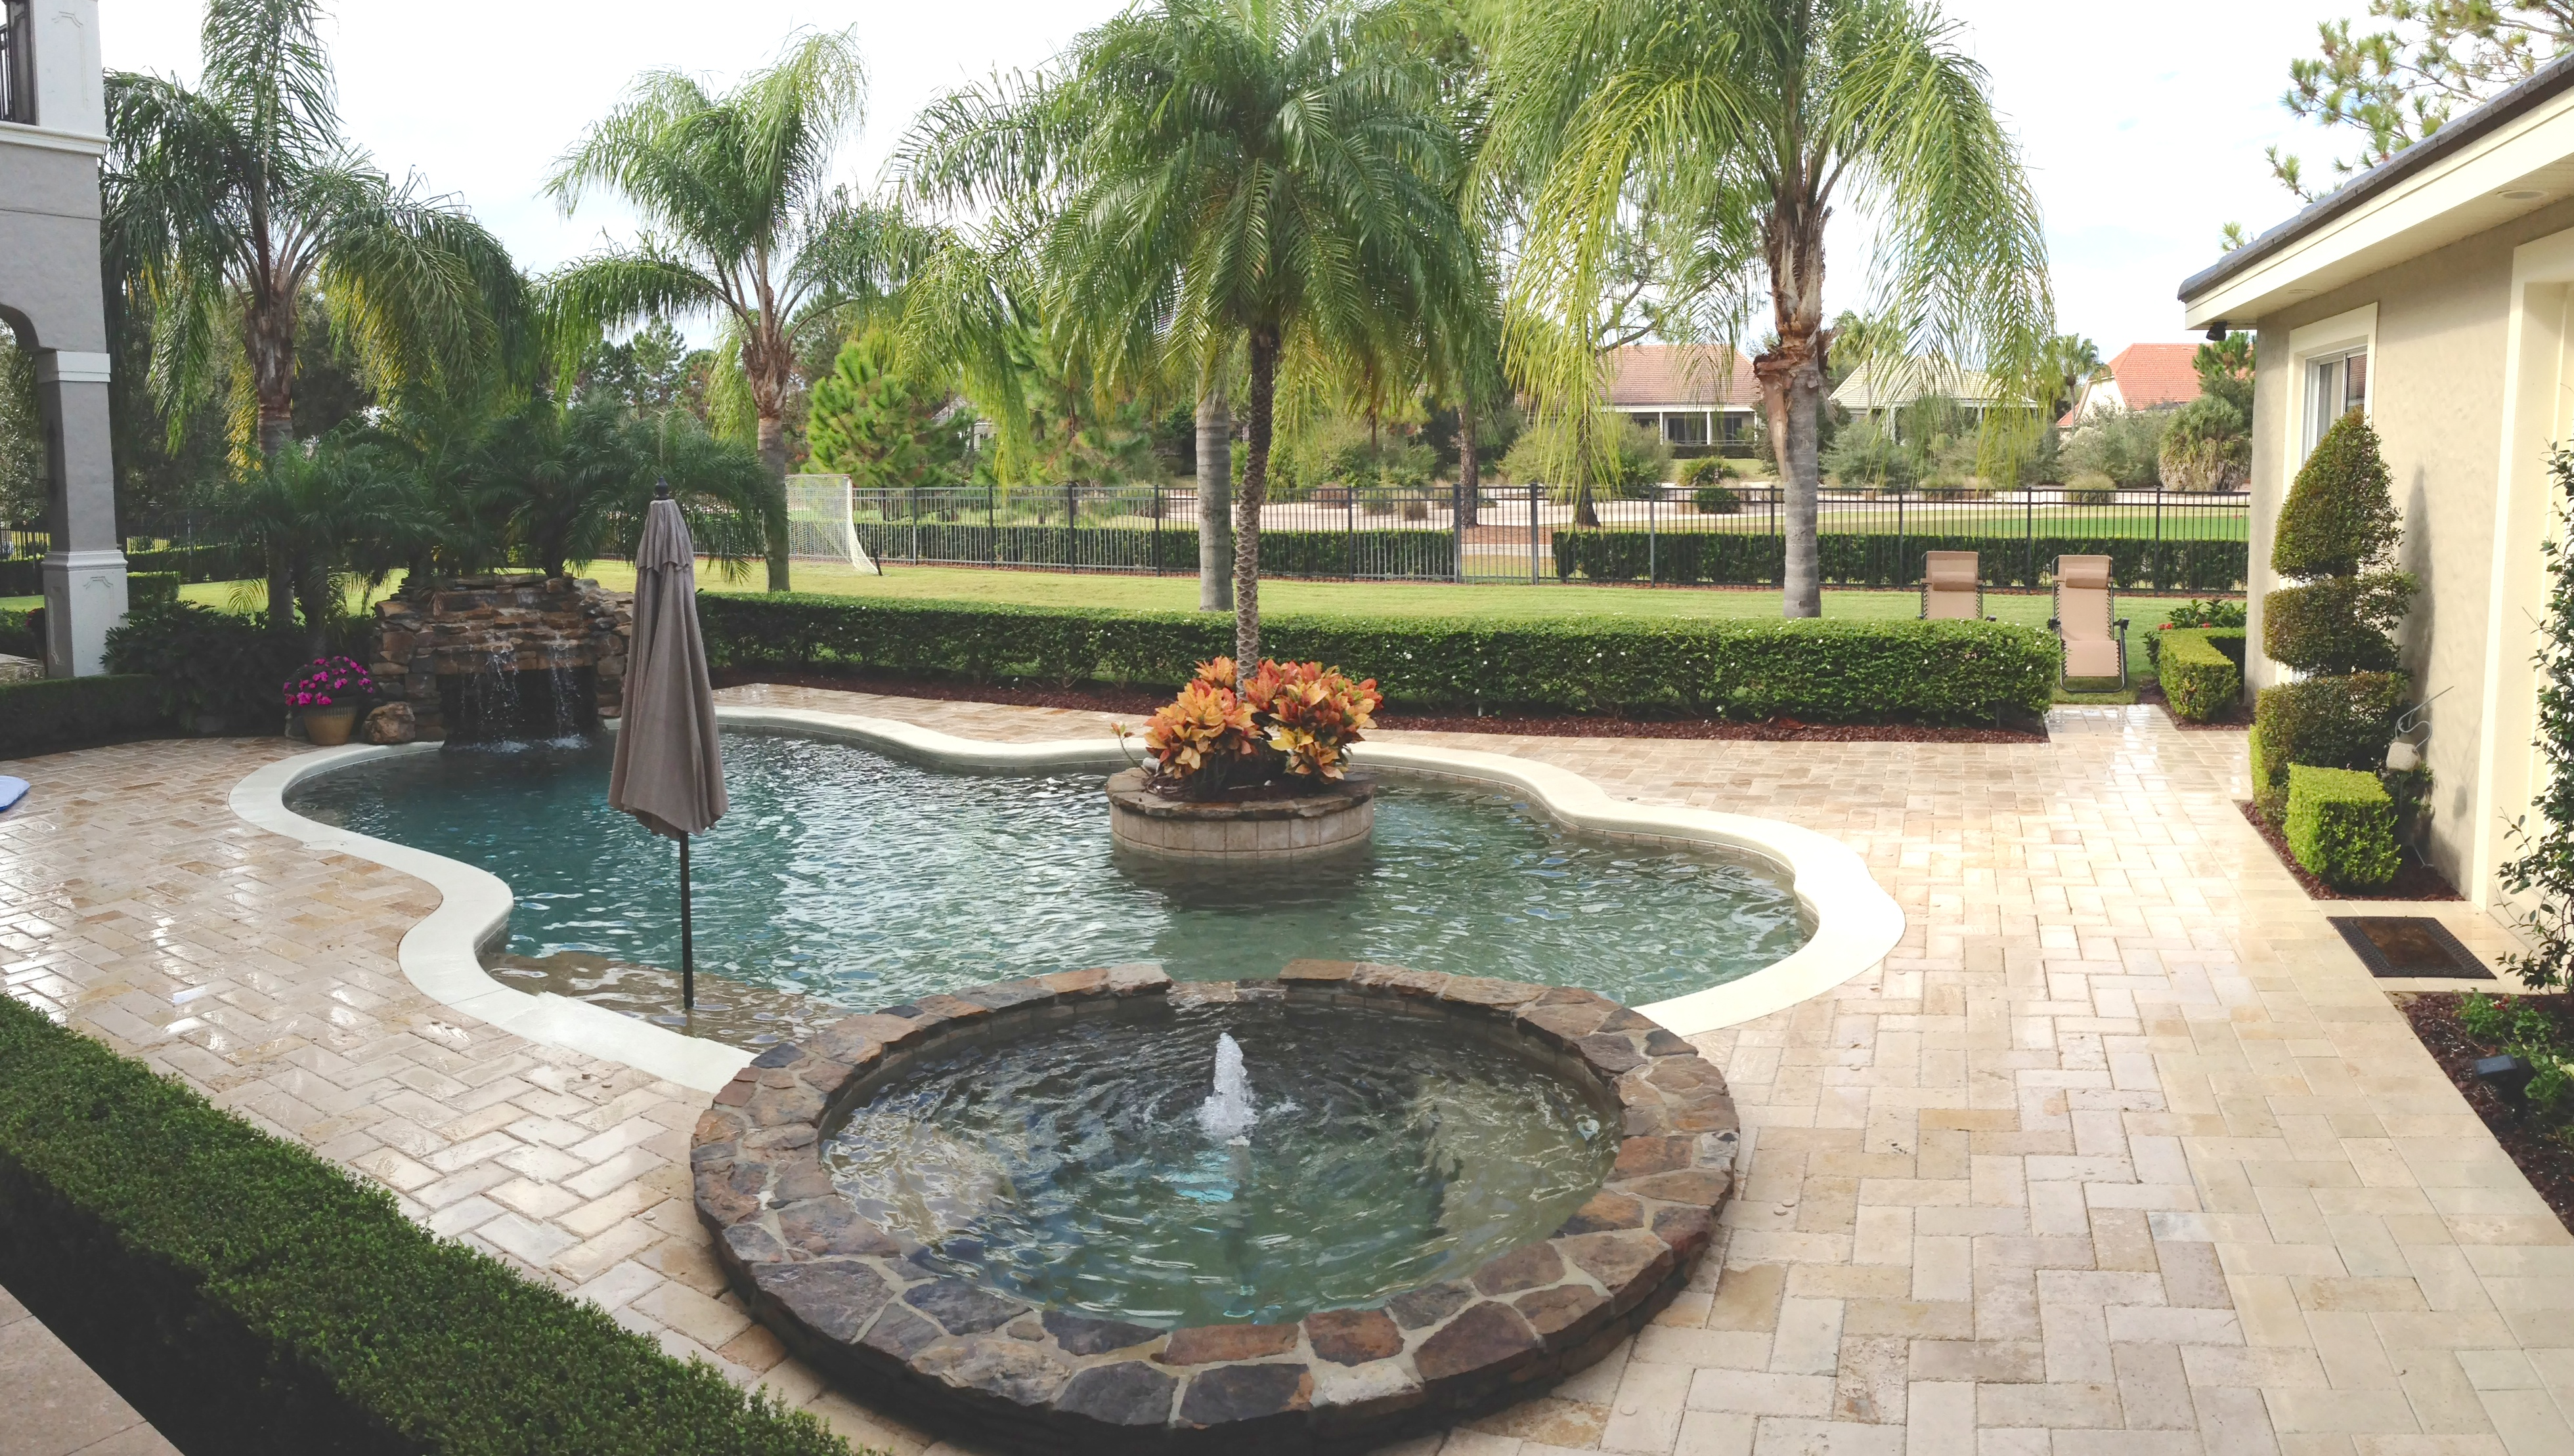 Pool Deck Patio Cleaning And Pressure Washing Orlando